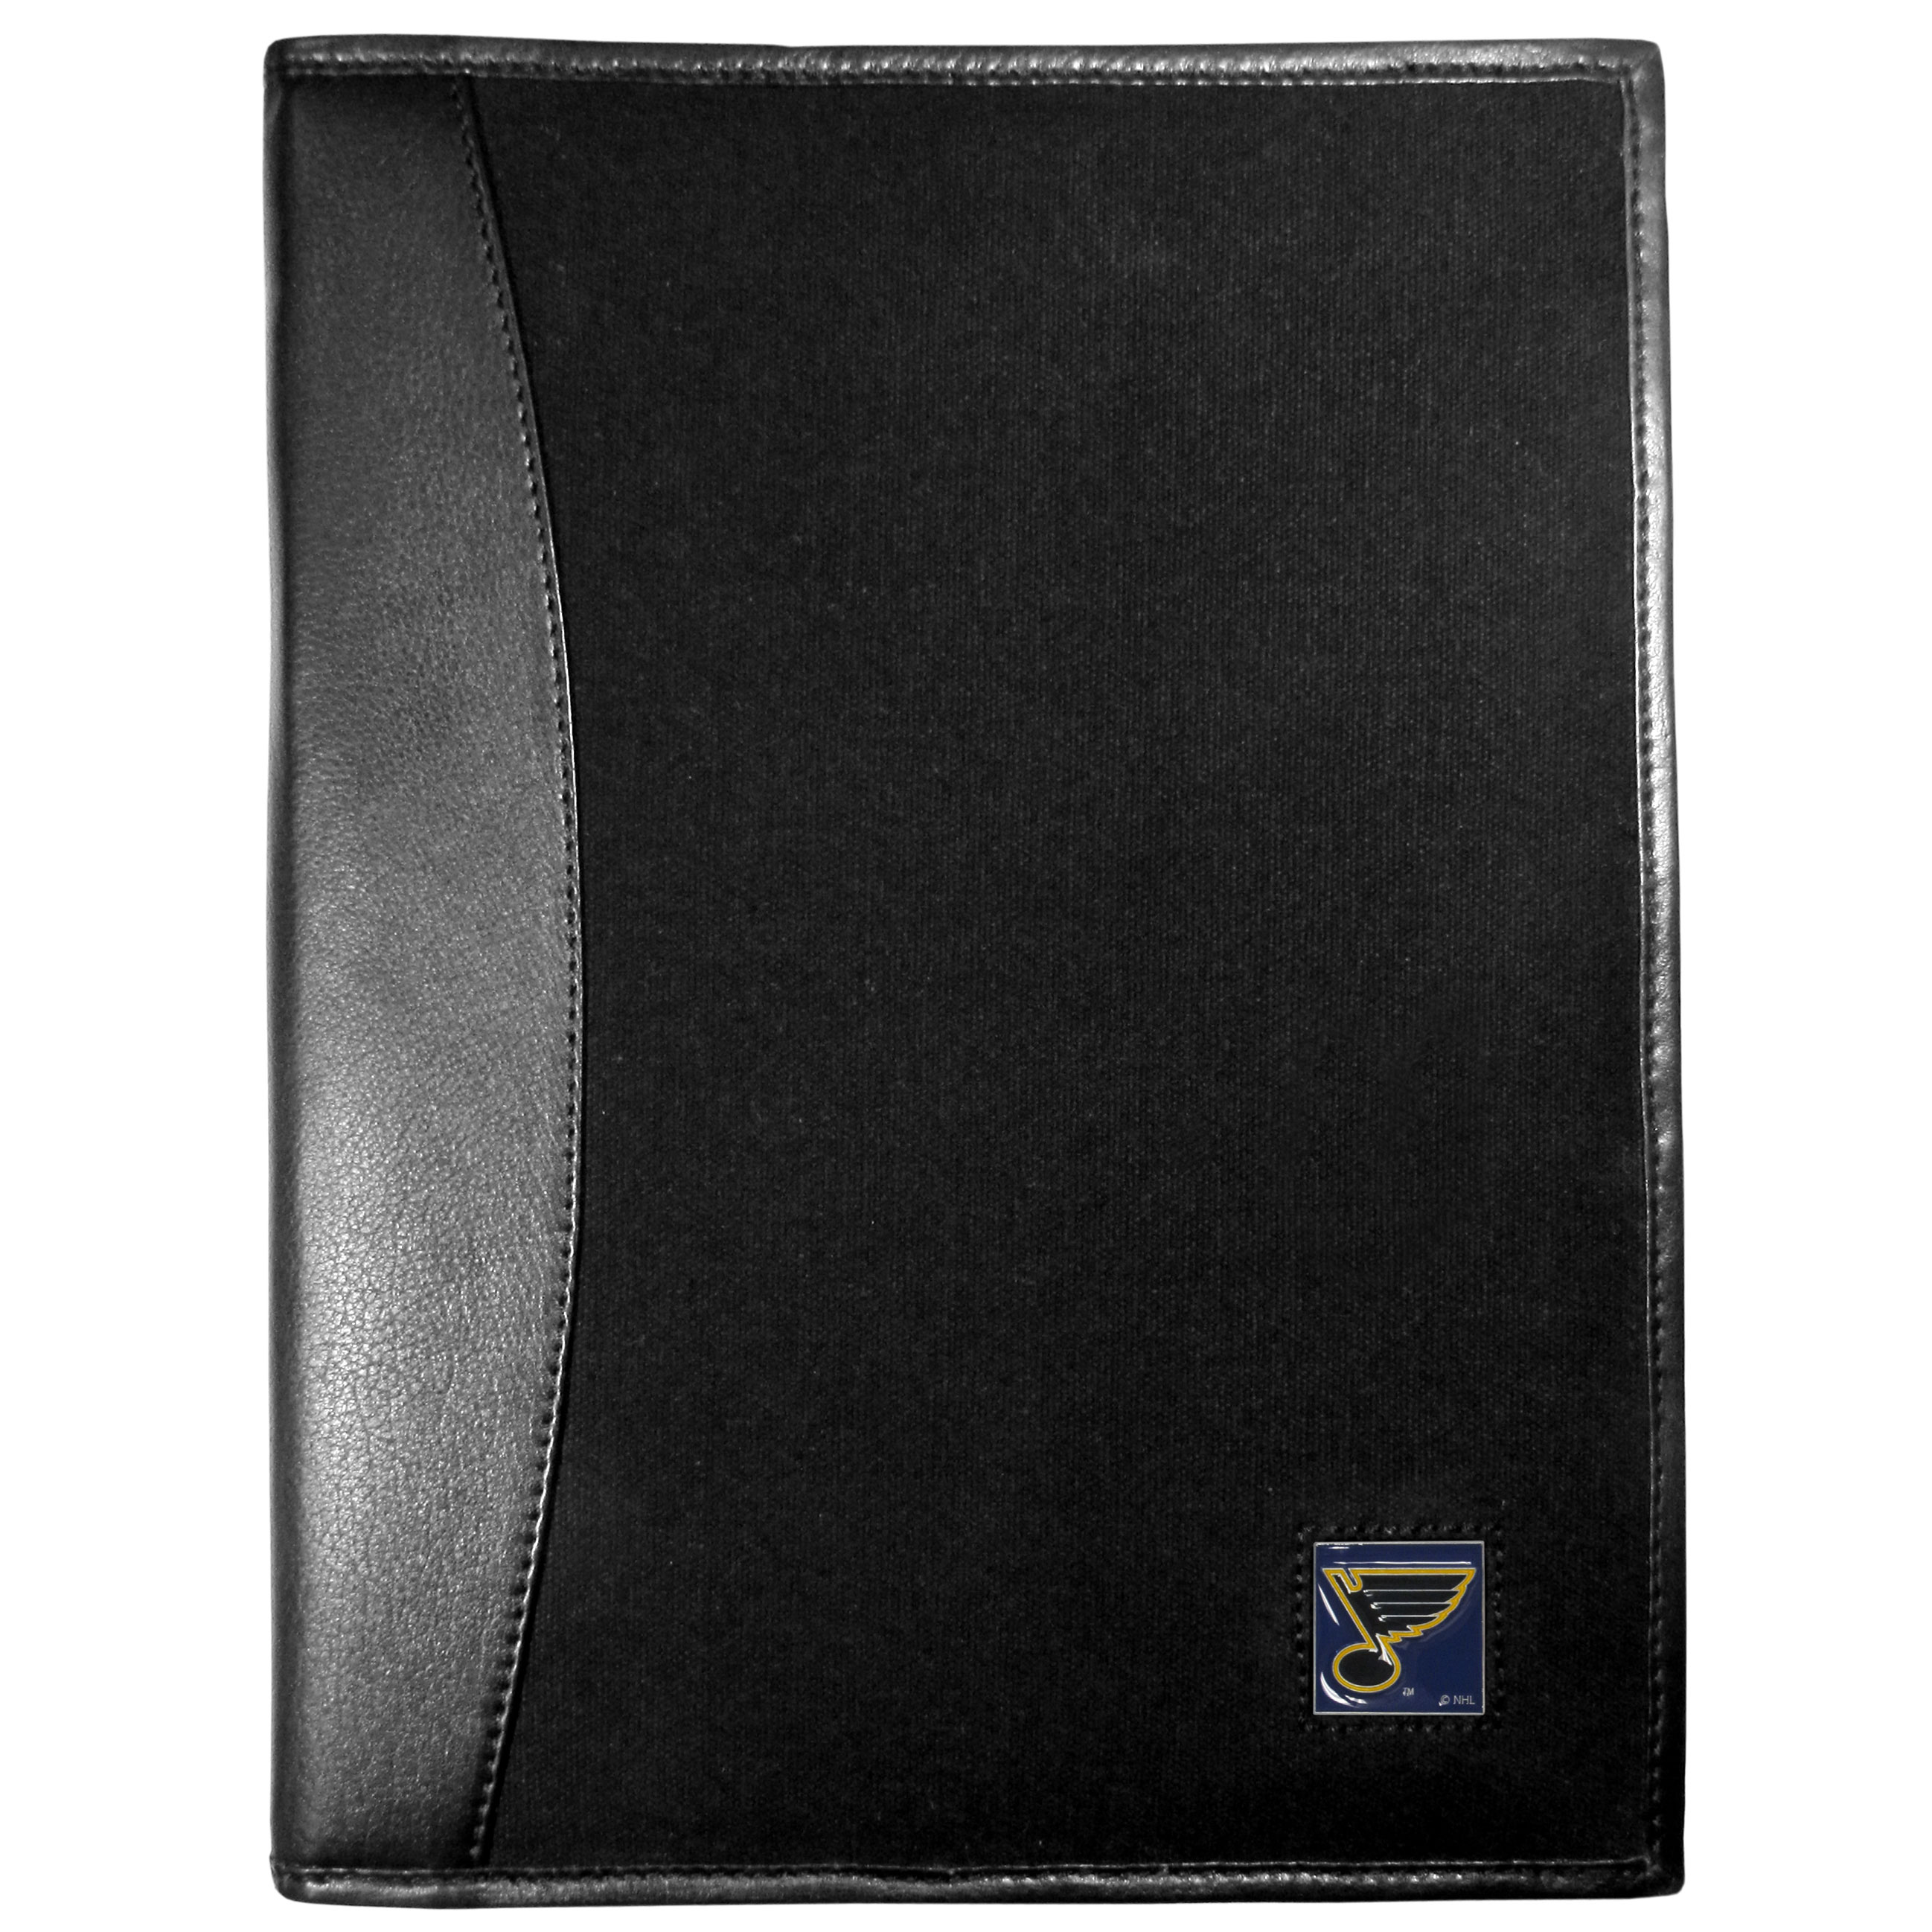 St. Louis Blues® Leather and Canvas Padfolio - Our leather and canvas padfolio perfectly blends form and function. The attractive portfolio is bound in fine grain leather with an attractive canvas finish and the interior is a soft nylon. This high quality business accessory also features a fully cast metal St. Louis Blues® emblem that is subtly set in the corner of the organizer. It is packed with features like 6 card slots for badges, business cards, hotel keys or credit cards and ID with a large pocket for loose papers and a writing tablet slot making it a must-have for the professional on the go.